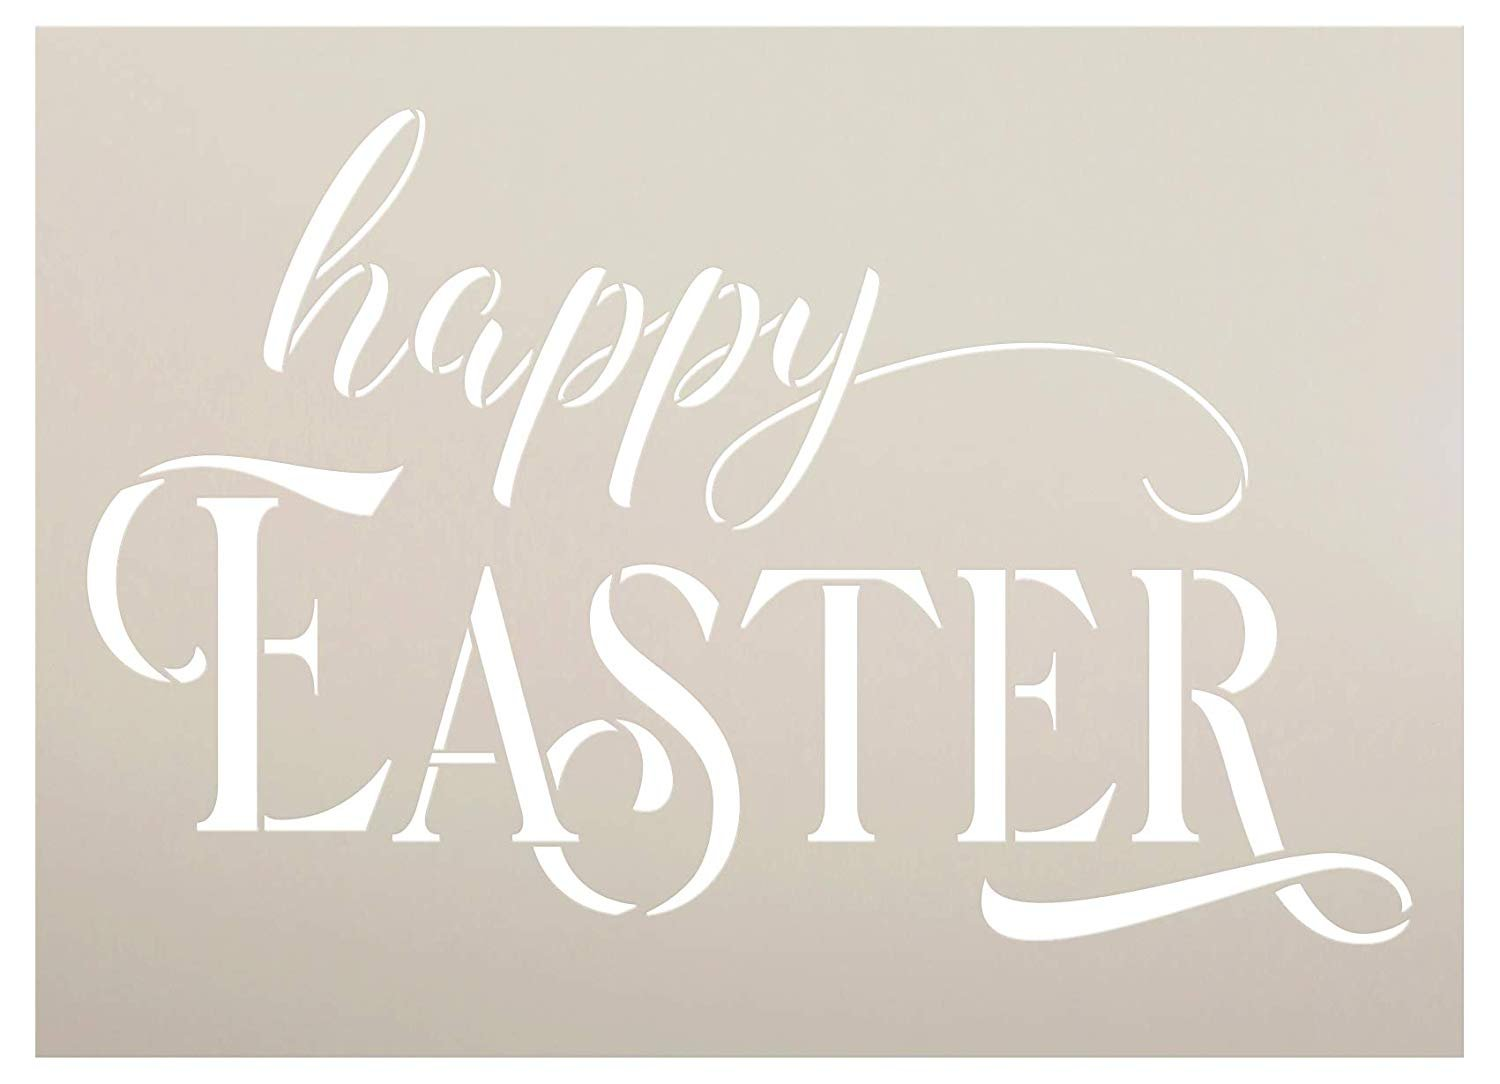 Happy Easter Script Stencil by StudioR12 | DIY Christian Spring Home Decor | Rustic Cursive Word Art | Craft & Paint Farmhouse Wood Signs | Reusable Mylar Template | Select Size